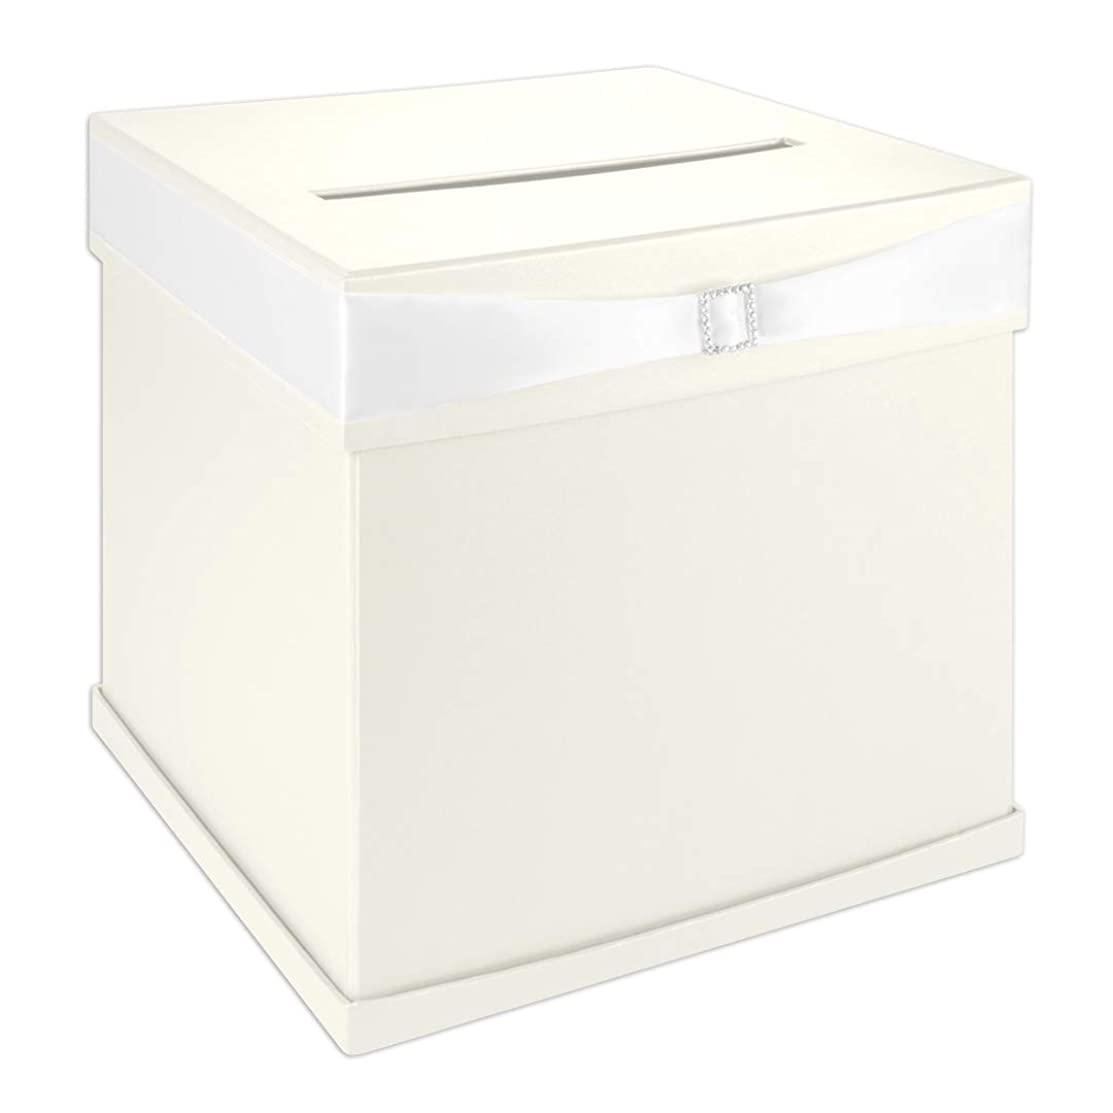 Andaz Press Ivory Wedding Card Box with Slot, White Satin Ribbon and Rhinestone Buckle, 10